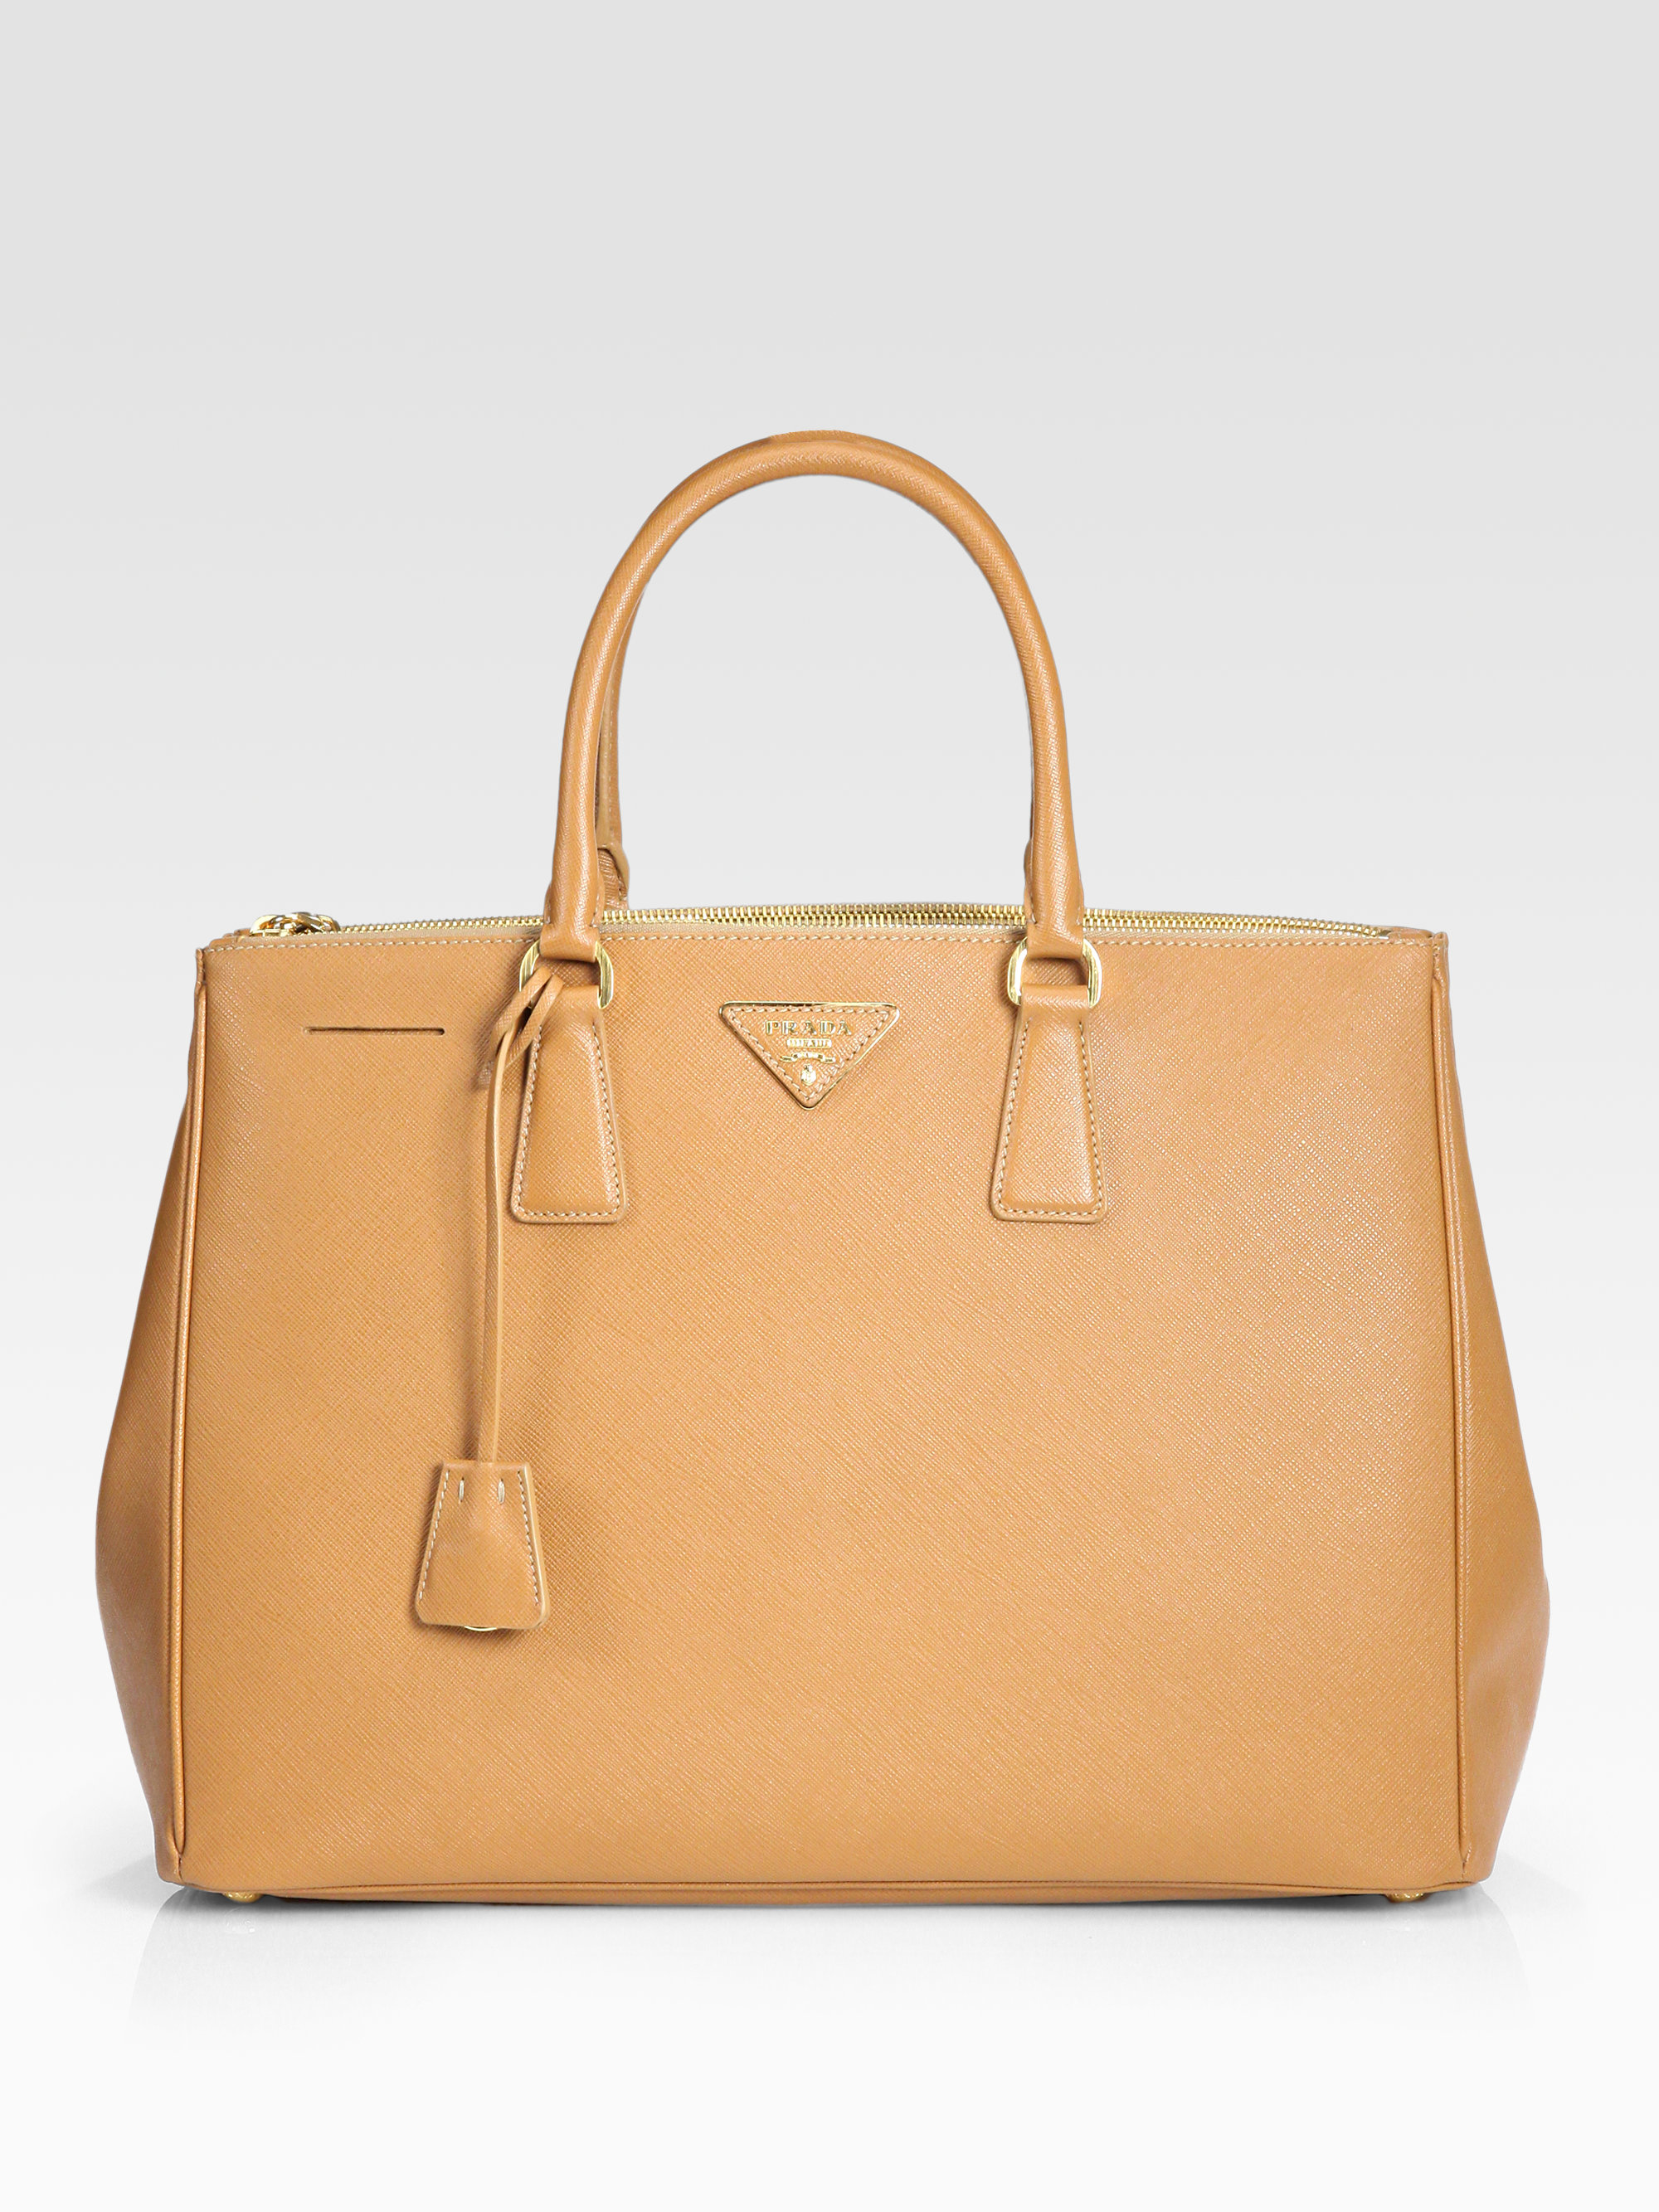 prada saffiano lux large double zip tote in brown caramel. Black Bedroom Furniture Sets. Home Design Ideas